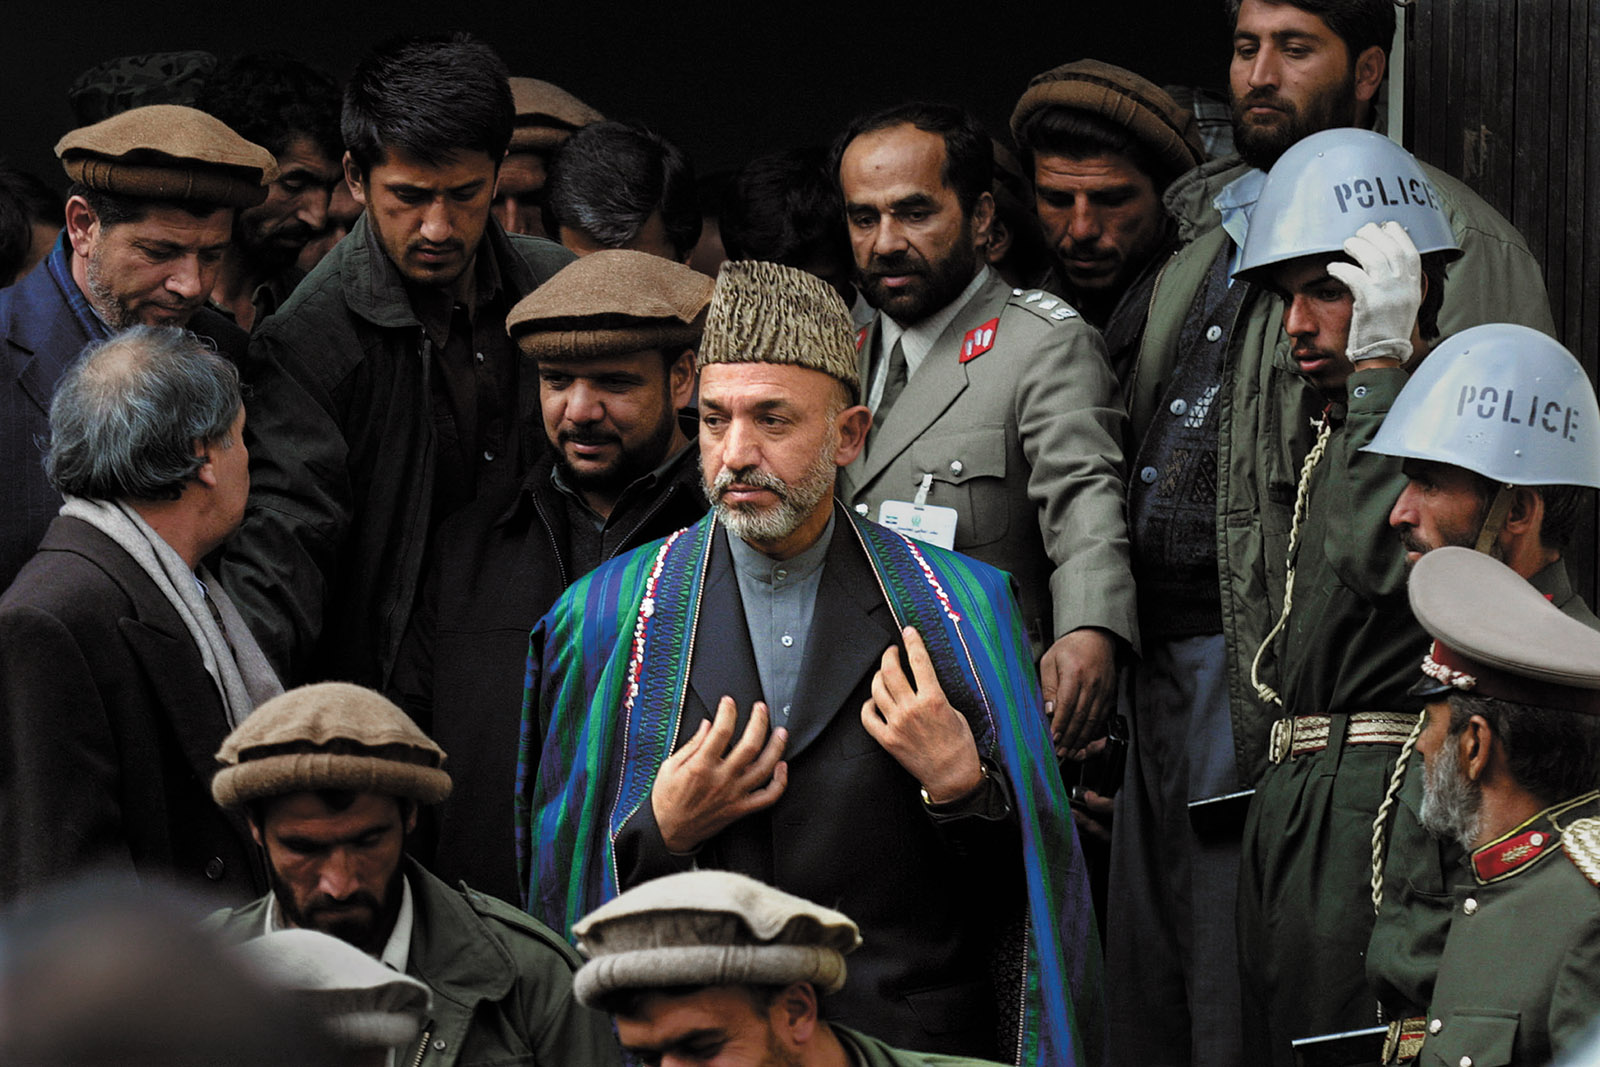 Hamid Karzai leaving the Interior Ministry after being sworn in as prime minister of Afghanistan's interim government, Kabul, December 2001; photograph by Paula Bronstein from her book Afghanistan: Between Hope and Fear, just published by University of Texas Press